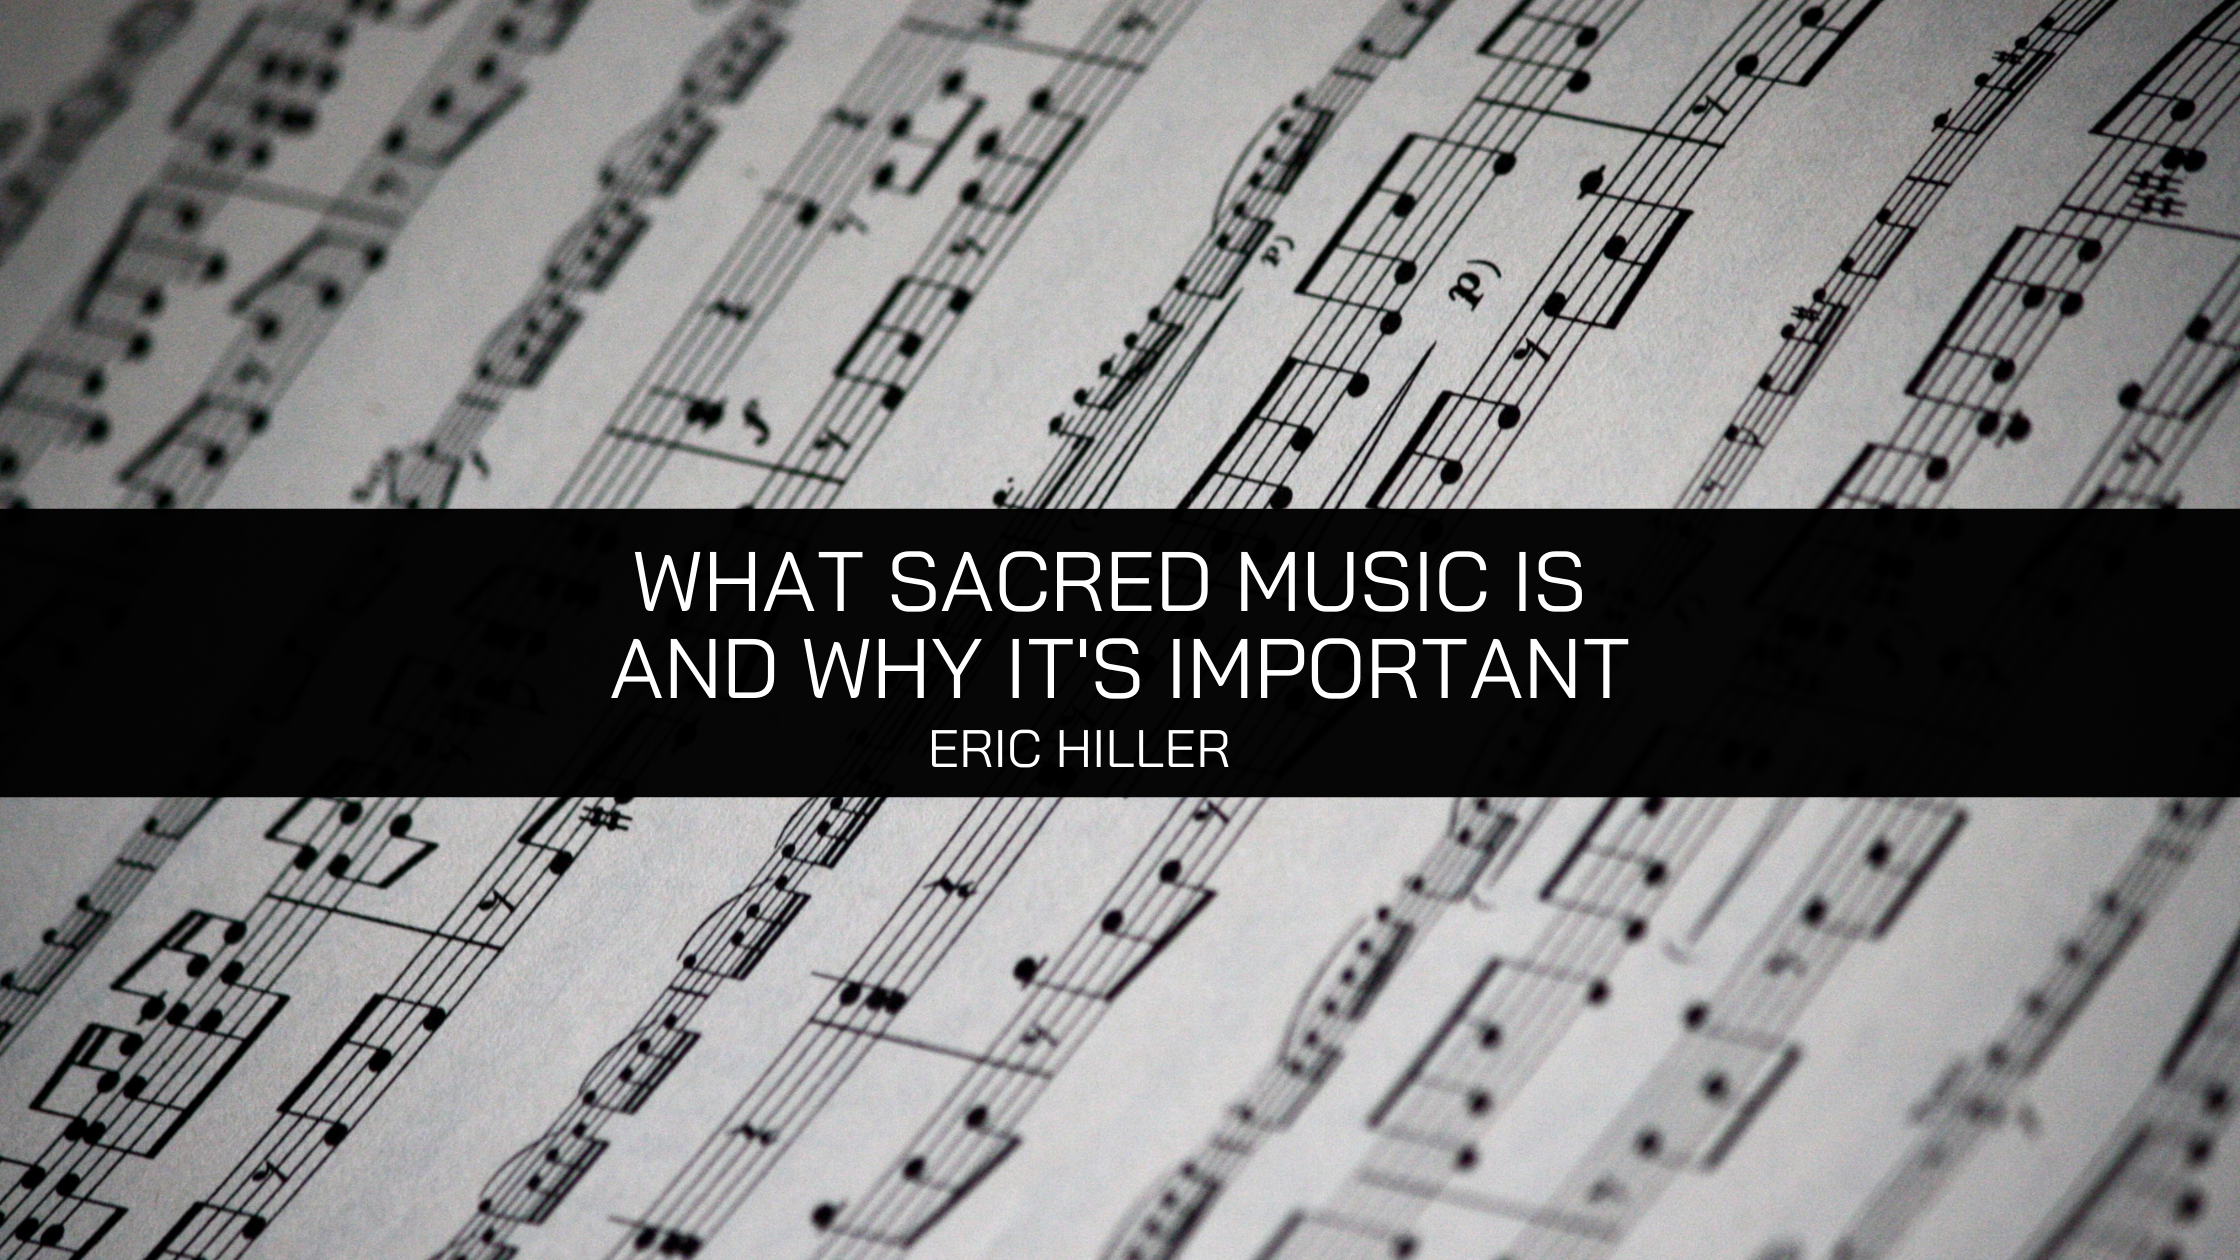 Eric Hiller Explains What Sacred Music Is and Why It's Important